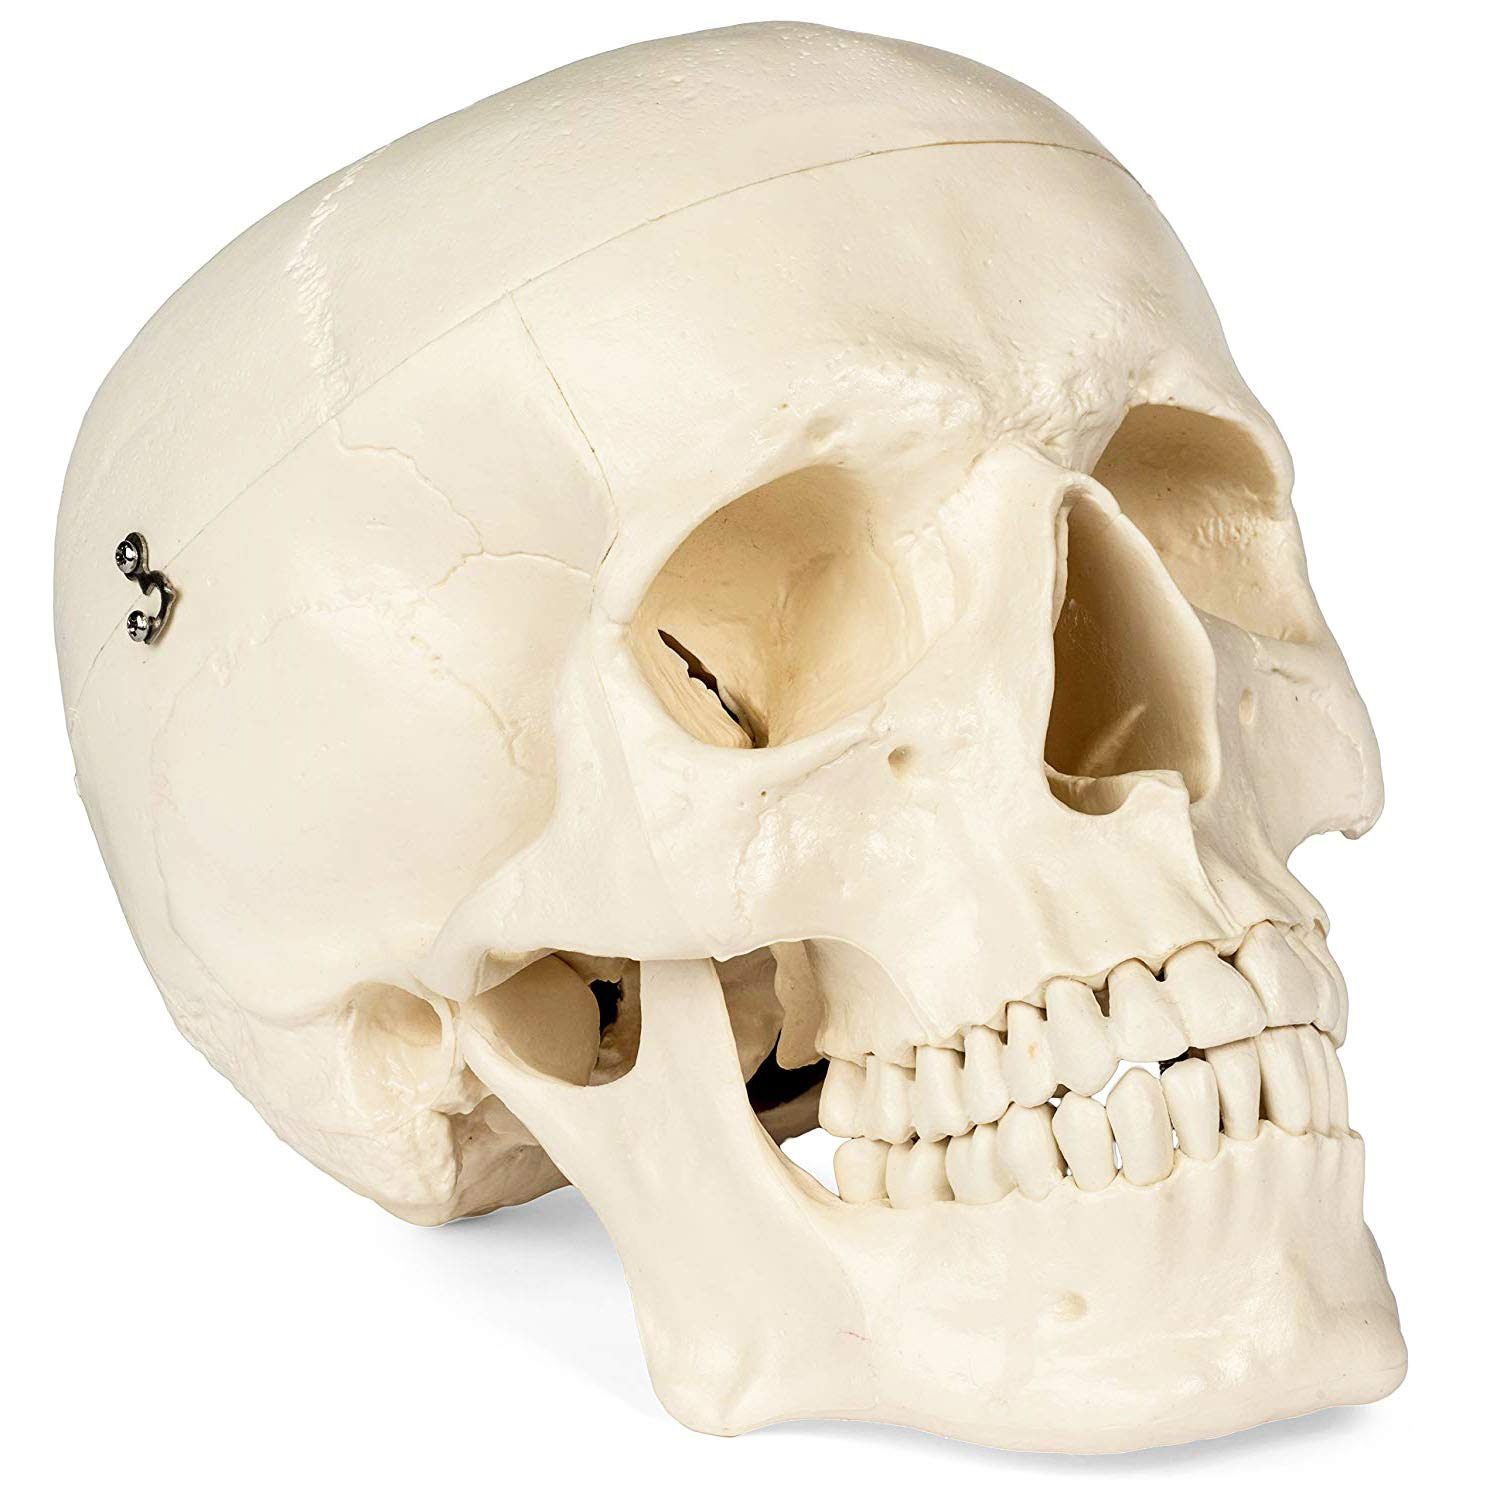 Medical Anatomical Skull Model 11 Life Size Replica Anatomy Adult